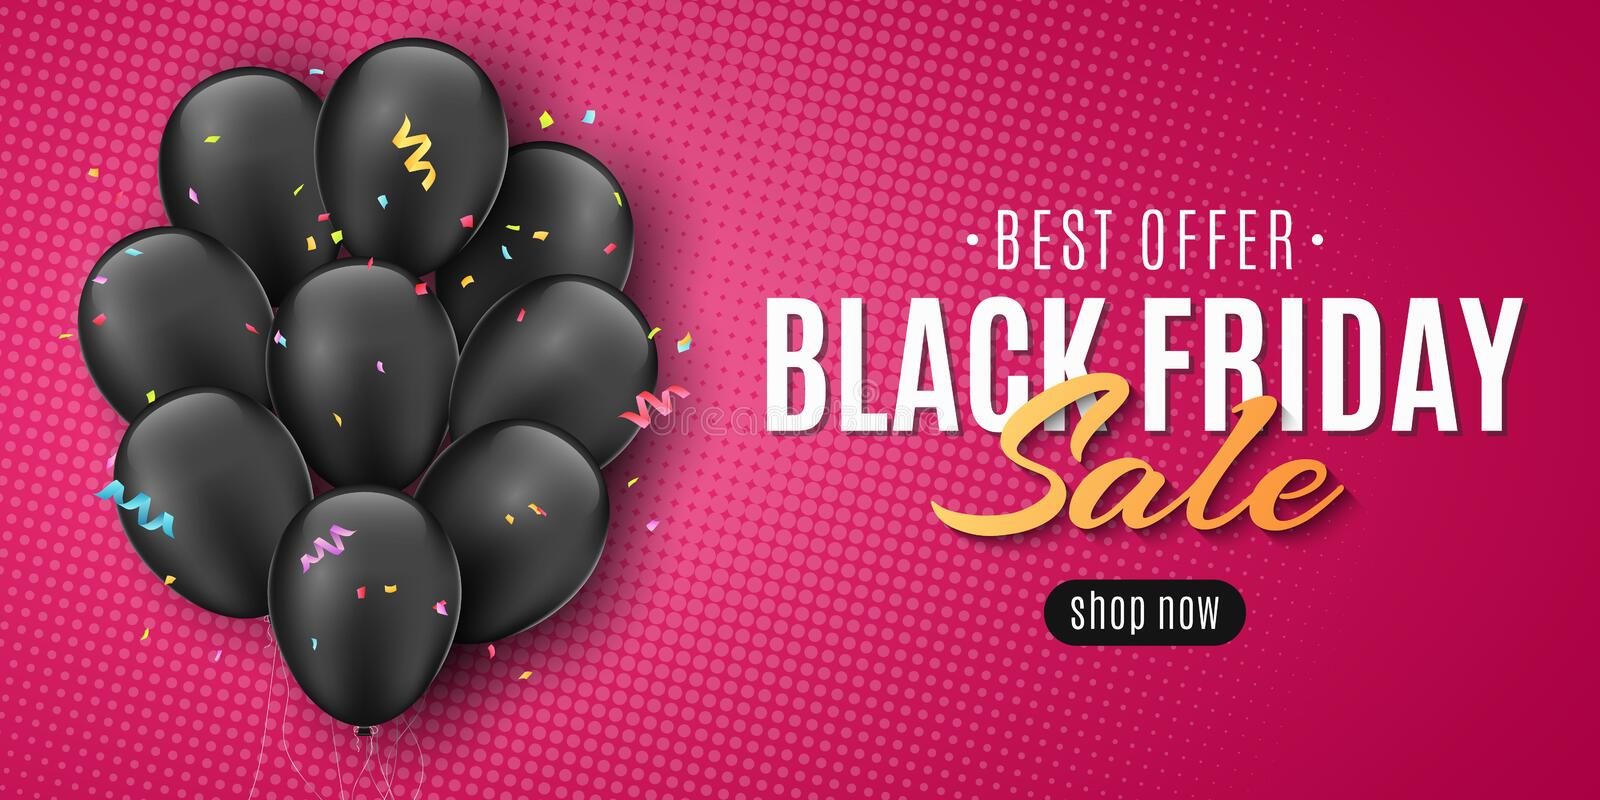 Sale banner for Black Friday. Flying confetti and serpentine. Flying black balloons. Lettering in frame. Pink background and. Halftone effect. Seasonal shopping royalty free illustration